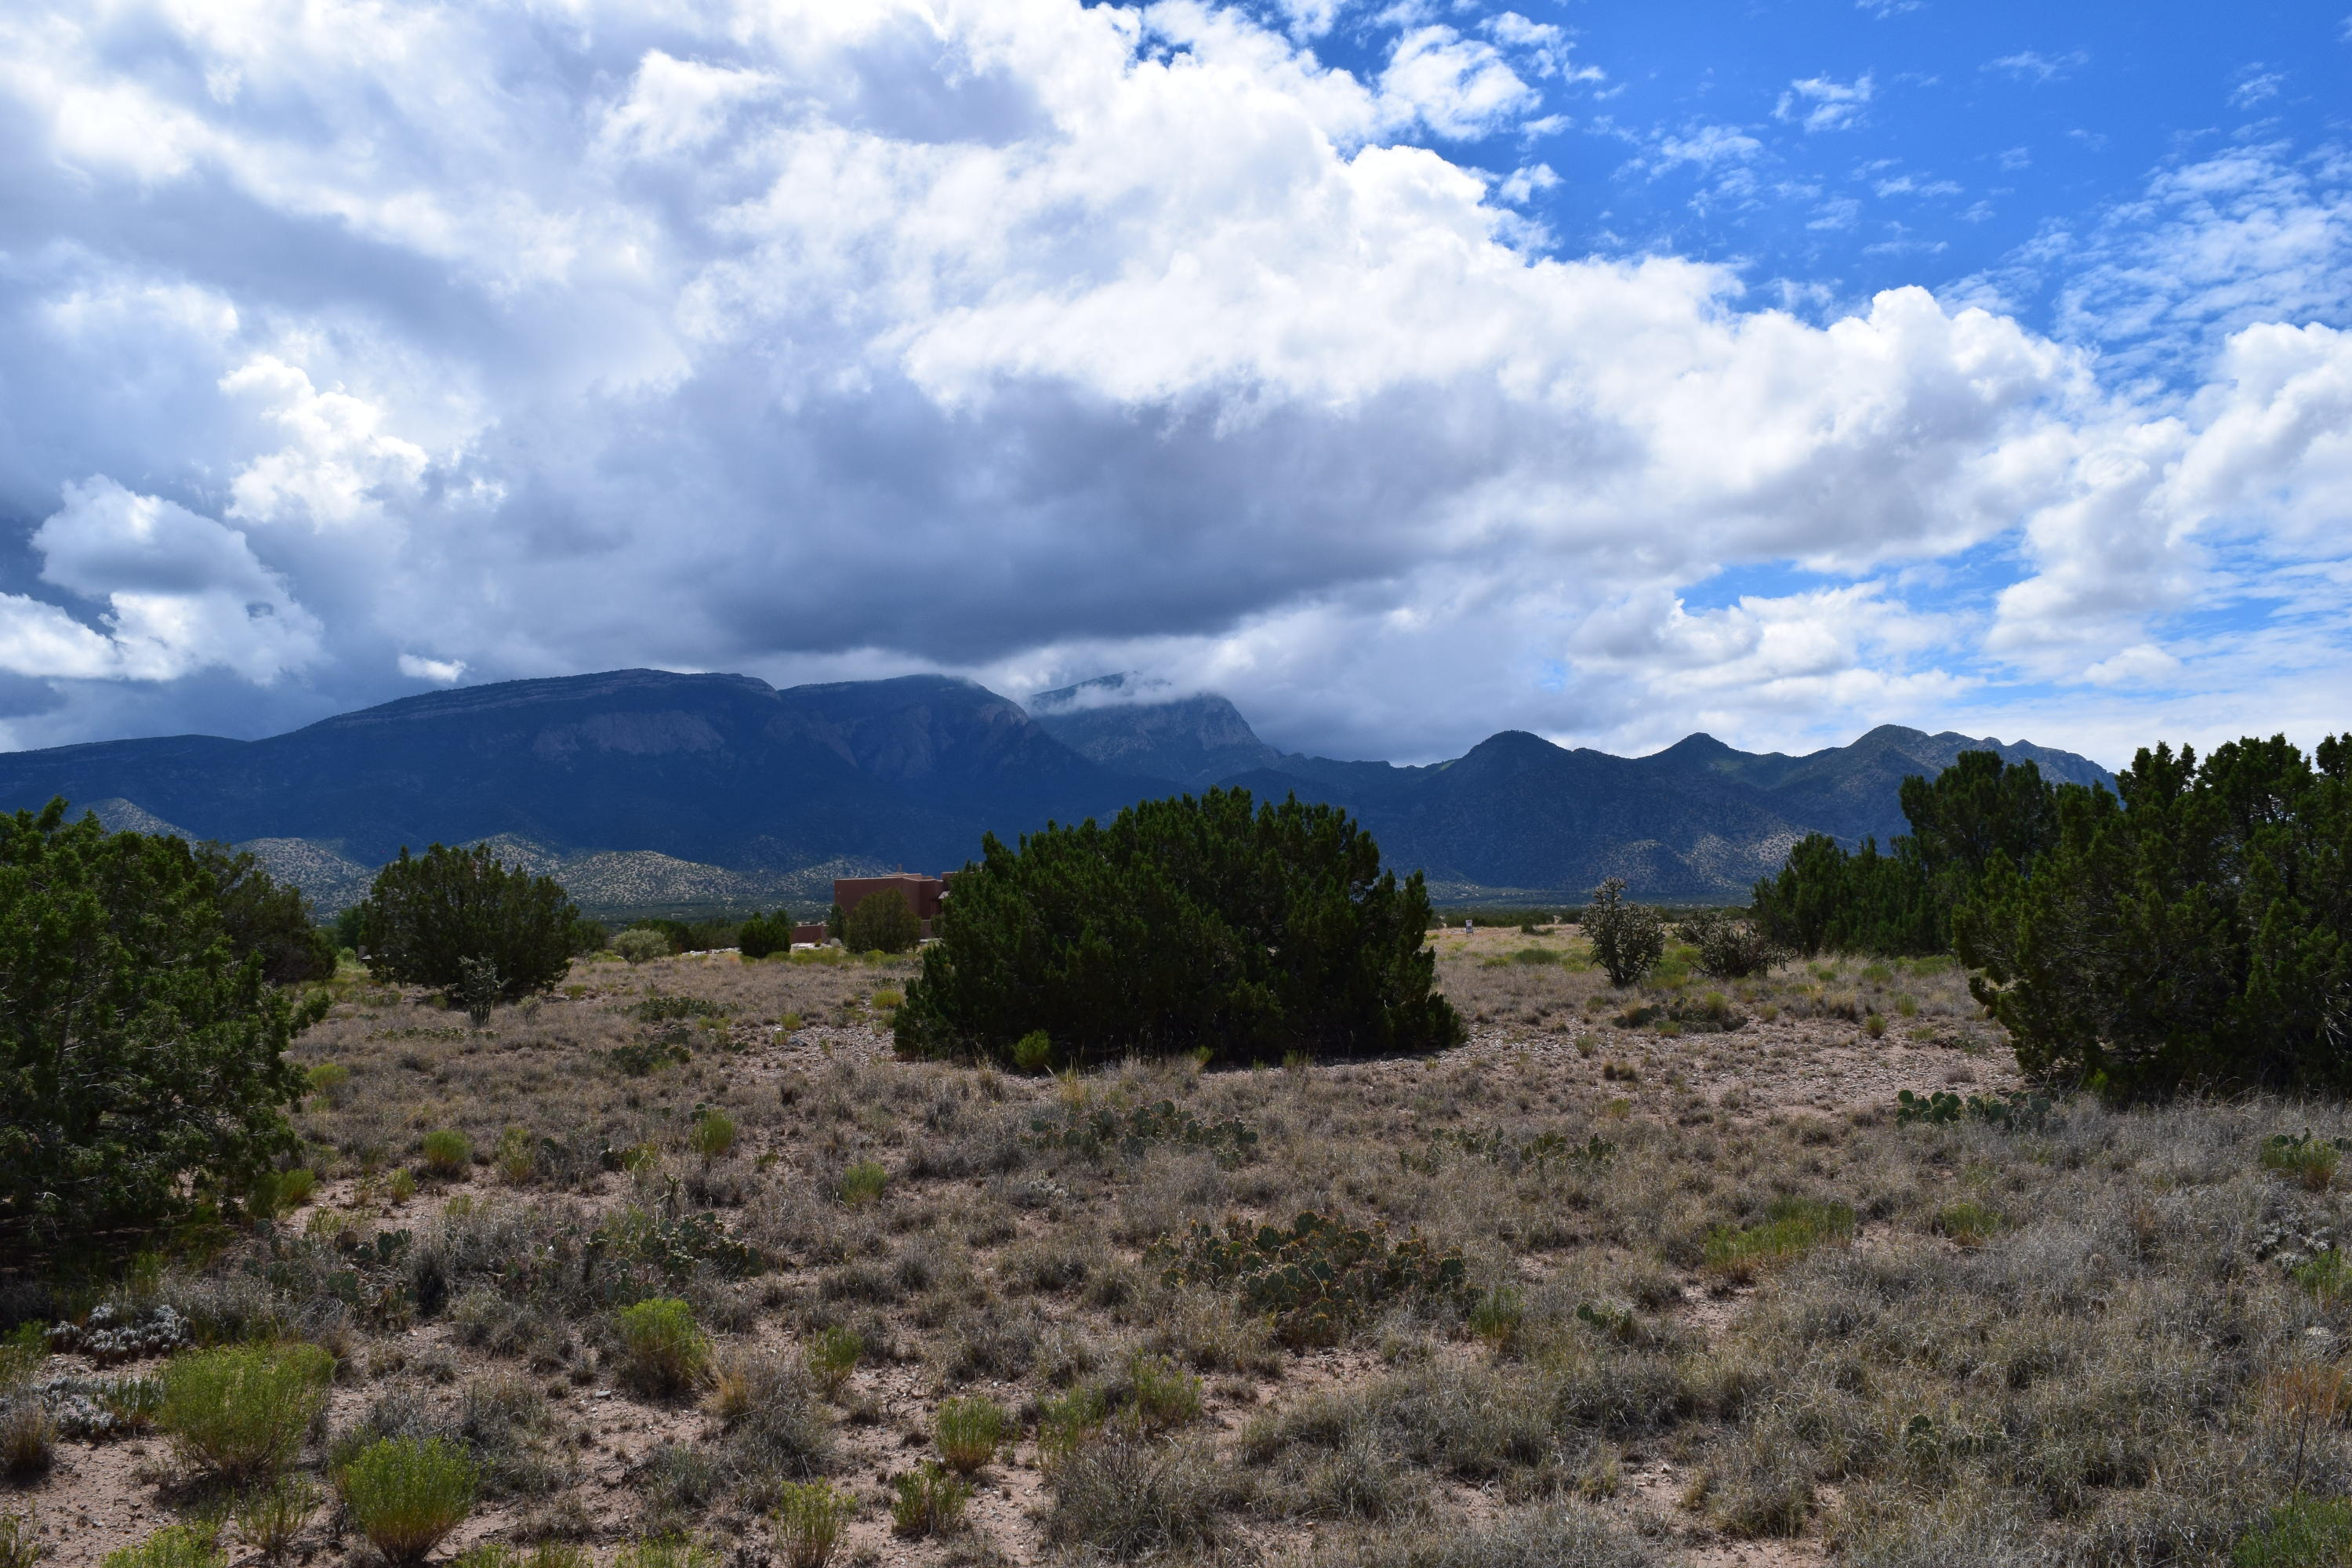 Lot 7 Apache Mesa Road, Placitas, NM 87043 - Placitas, NM real estate listing